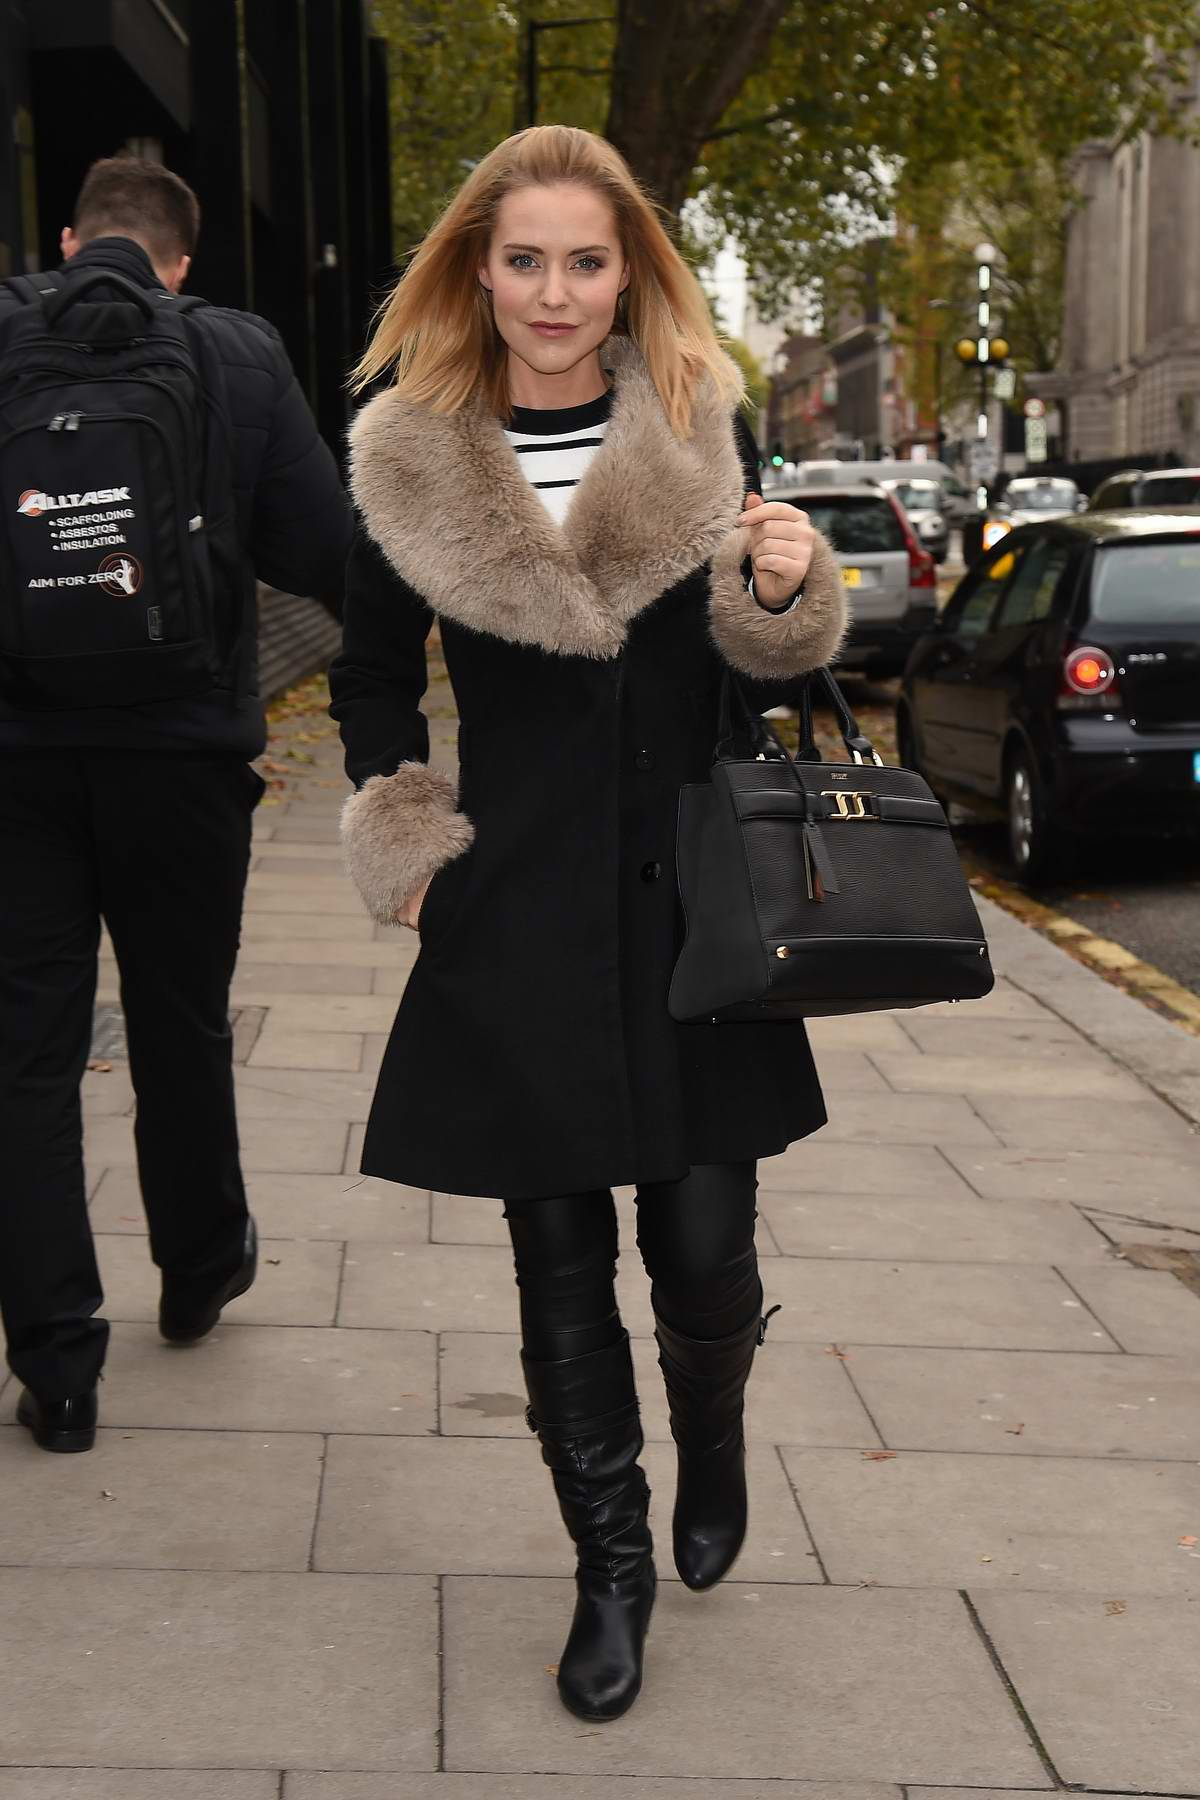 Stephanie Waring is seen out and about wearing a black coat with a fur collar in London